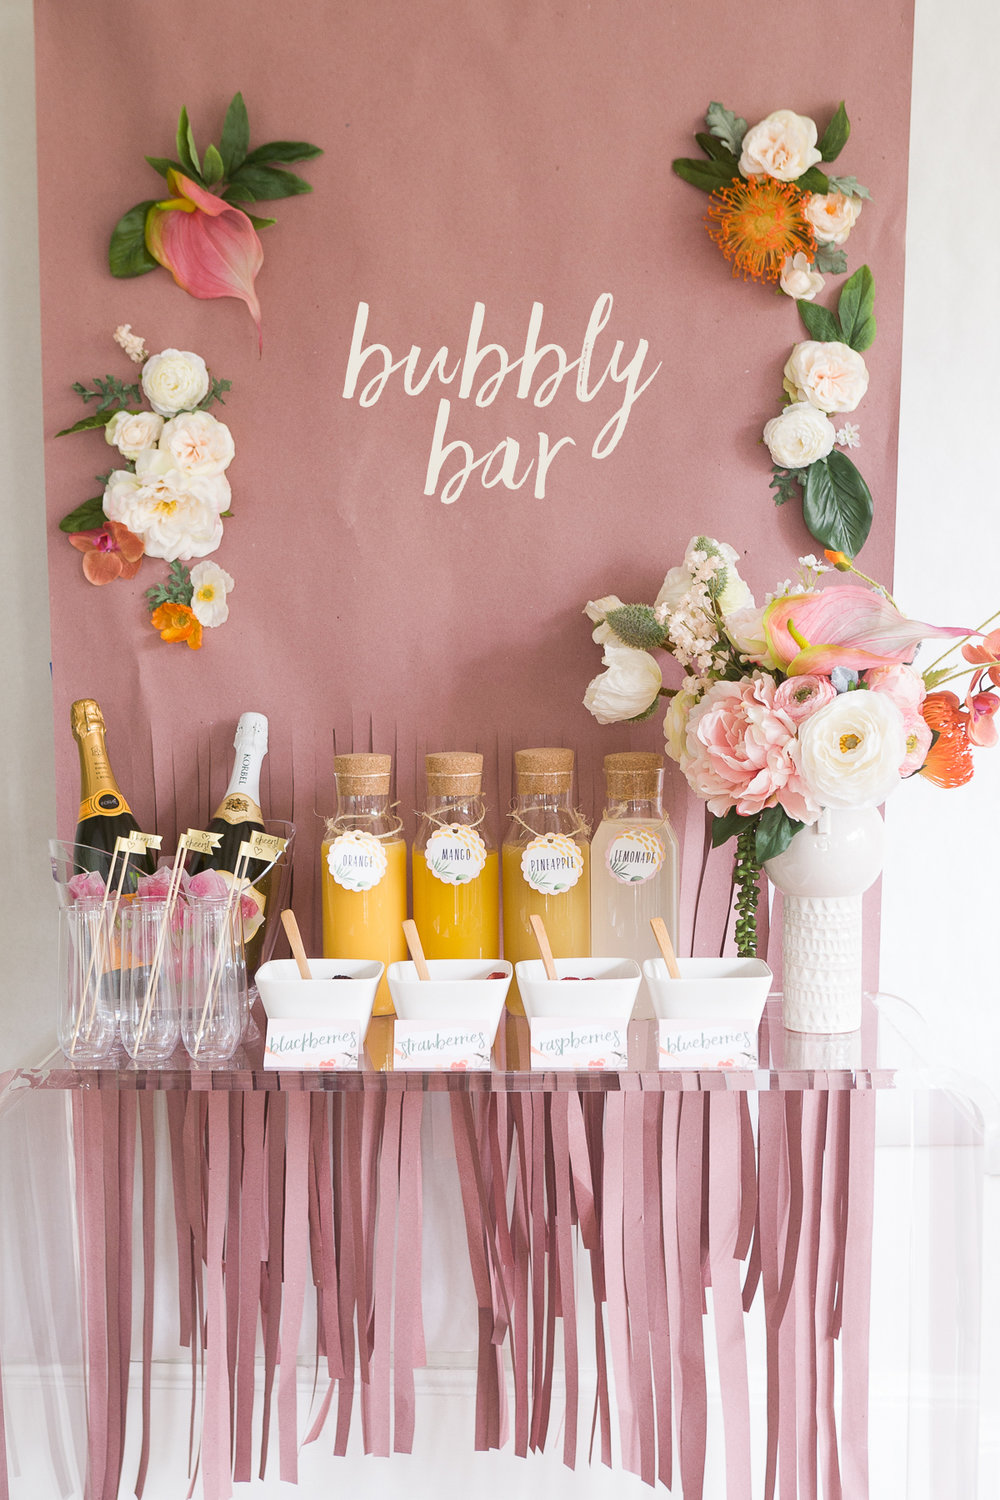 Mimosa Bar with Lots of Free Printables from Avery - http://ruffledblog.com/mimosa-bar-bridal-shower-brunch-with-lots-of-free-printables